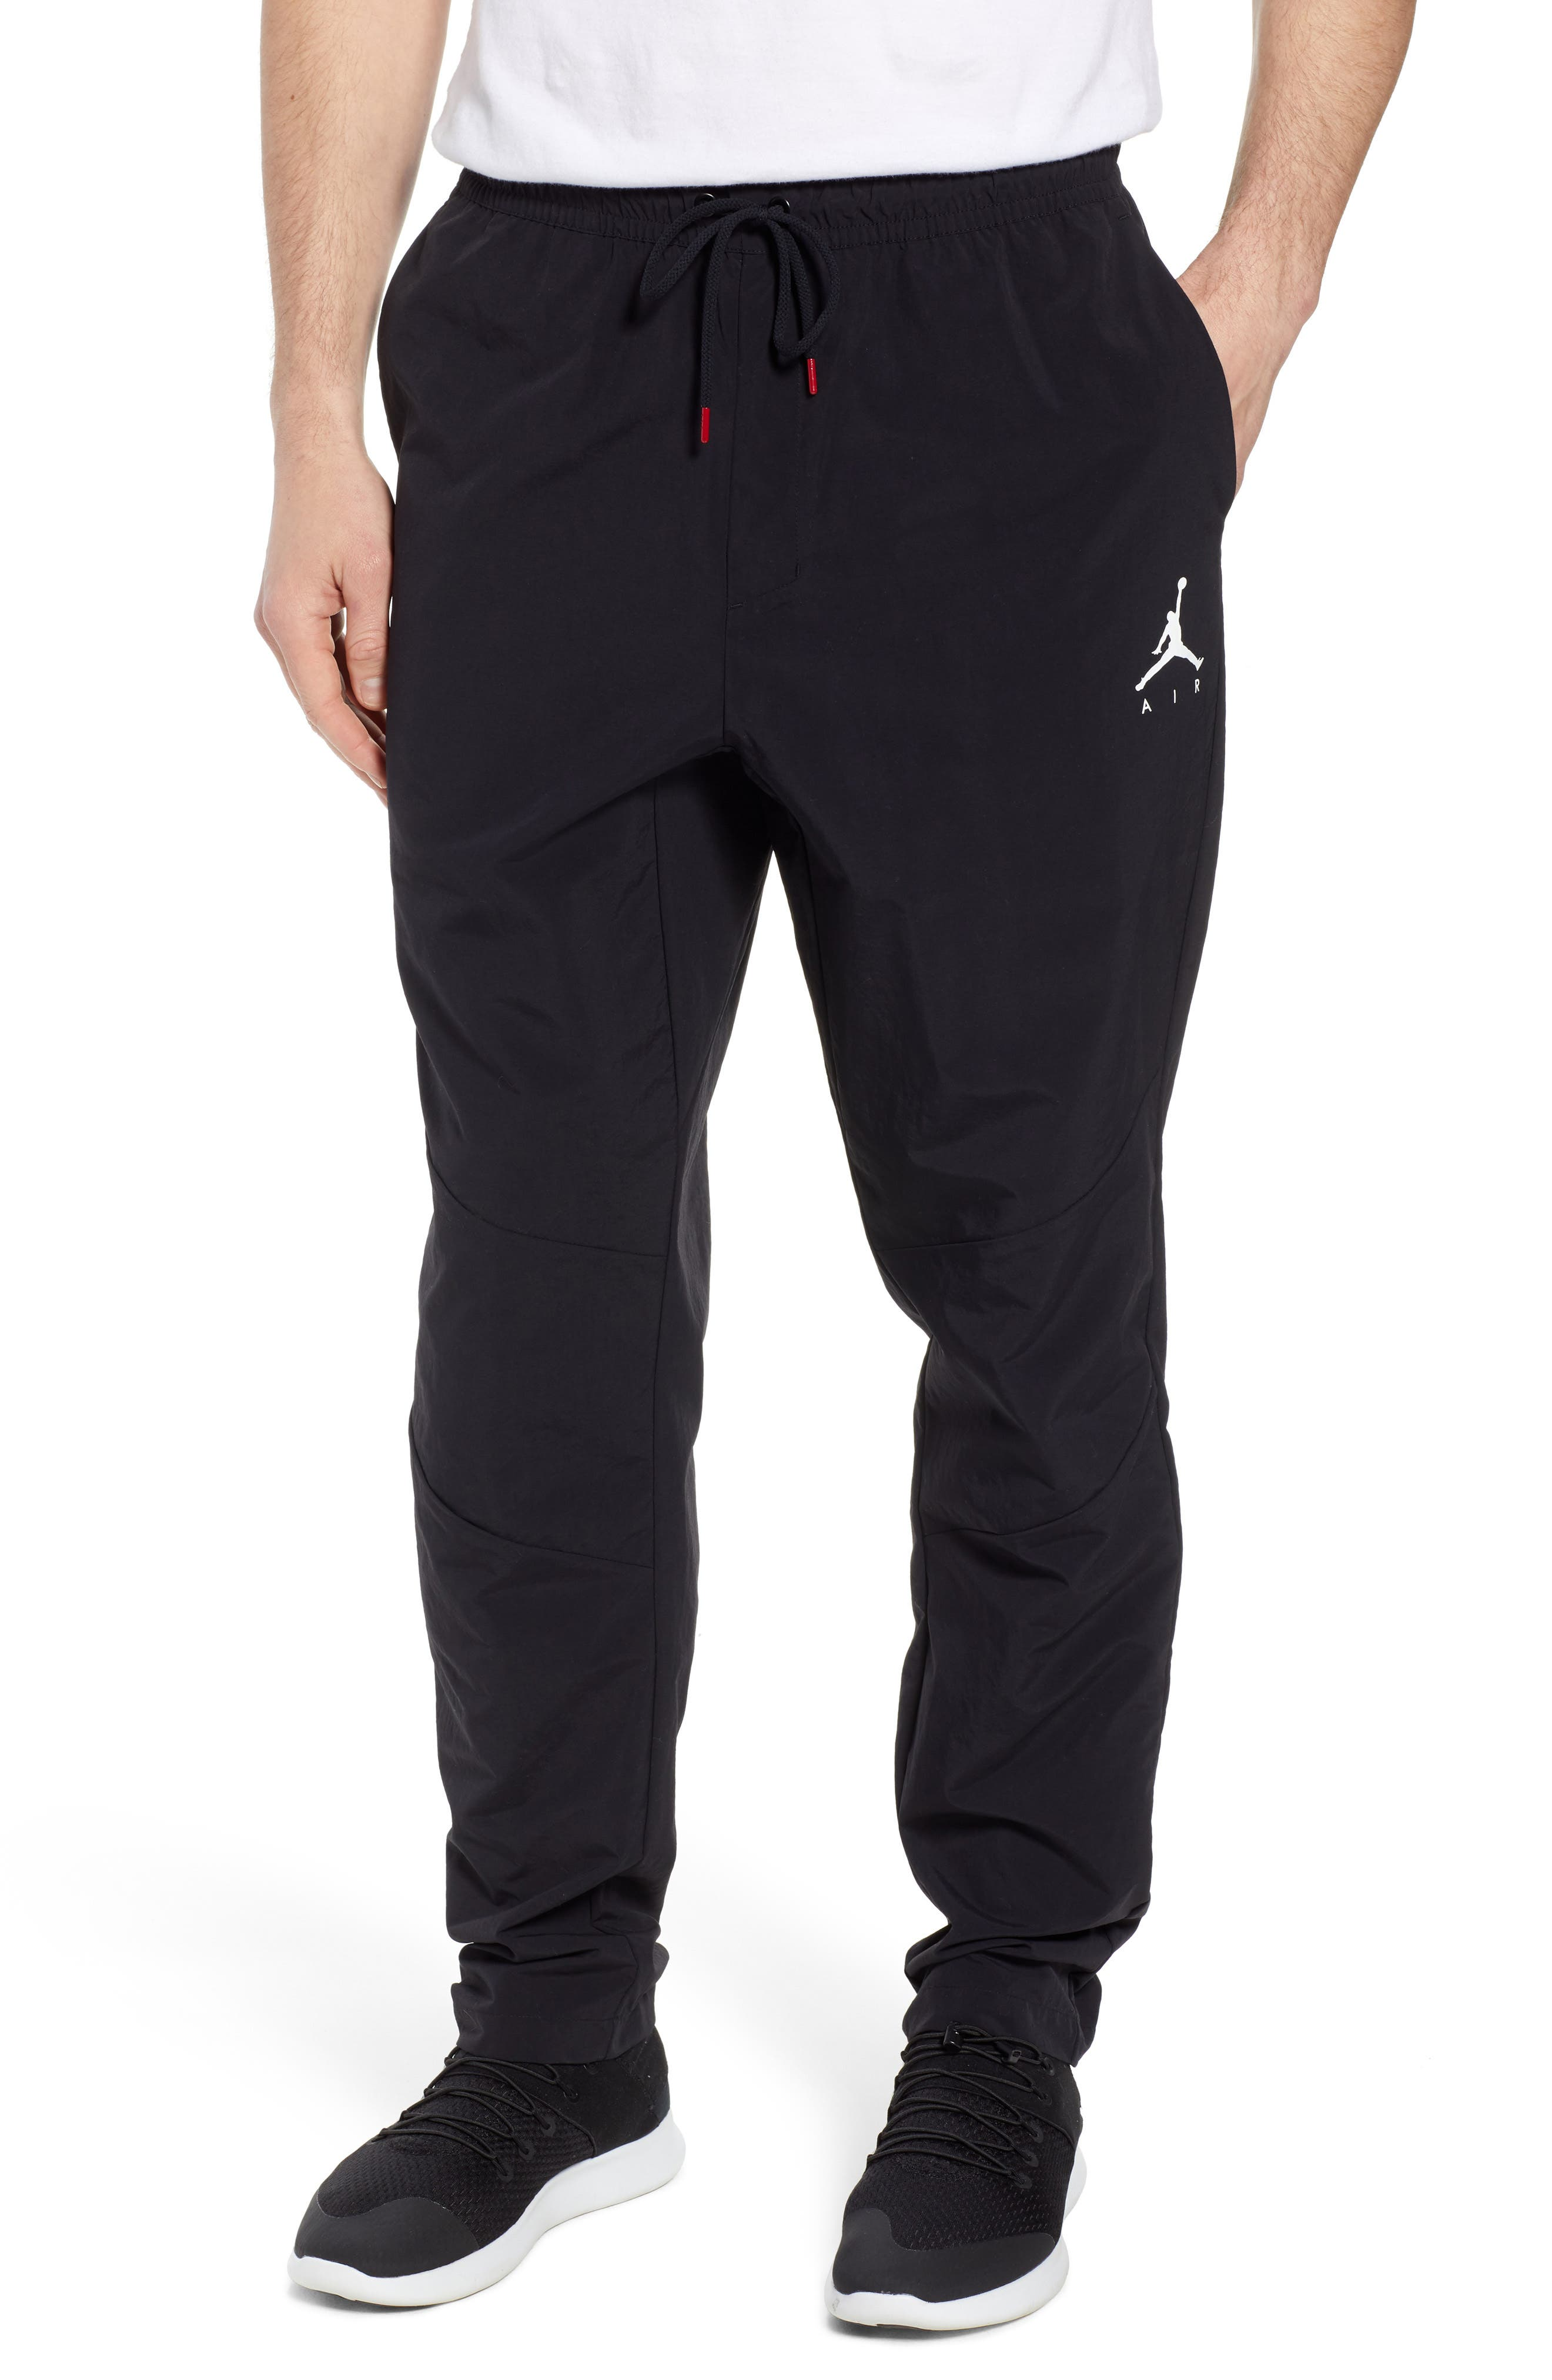 Jordan Jumpman Woven Pants,                             Main thumbnail 1, color,                             BLACK/ WHITE